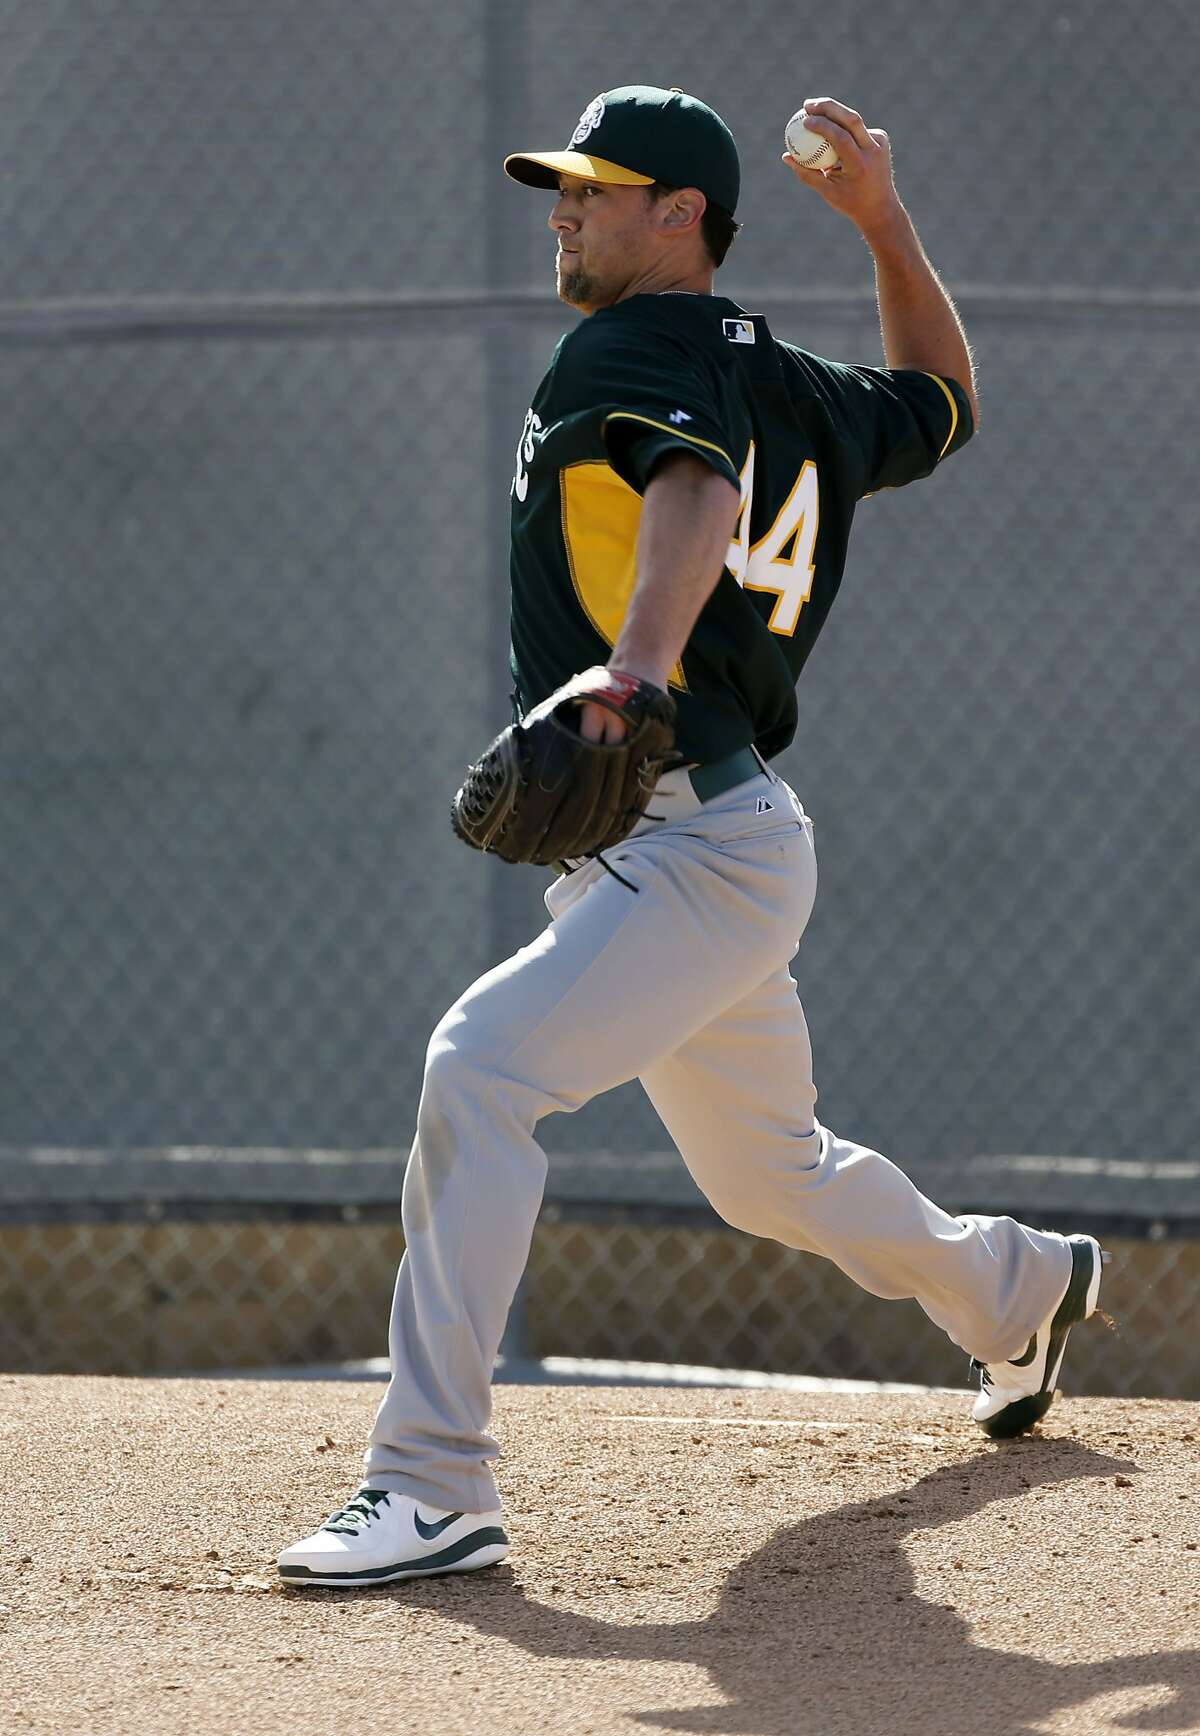 A's pitcher Luke Gregerson, (44) throws during practice drills at the Papago Baseball Facility in Phoenix, Arizona on Tuesday Feb. 18, 2014. Major League Baseball's Oakland Athletics continue their spring training in the Arizona Desert in preparation for the upcoming season.